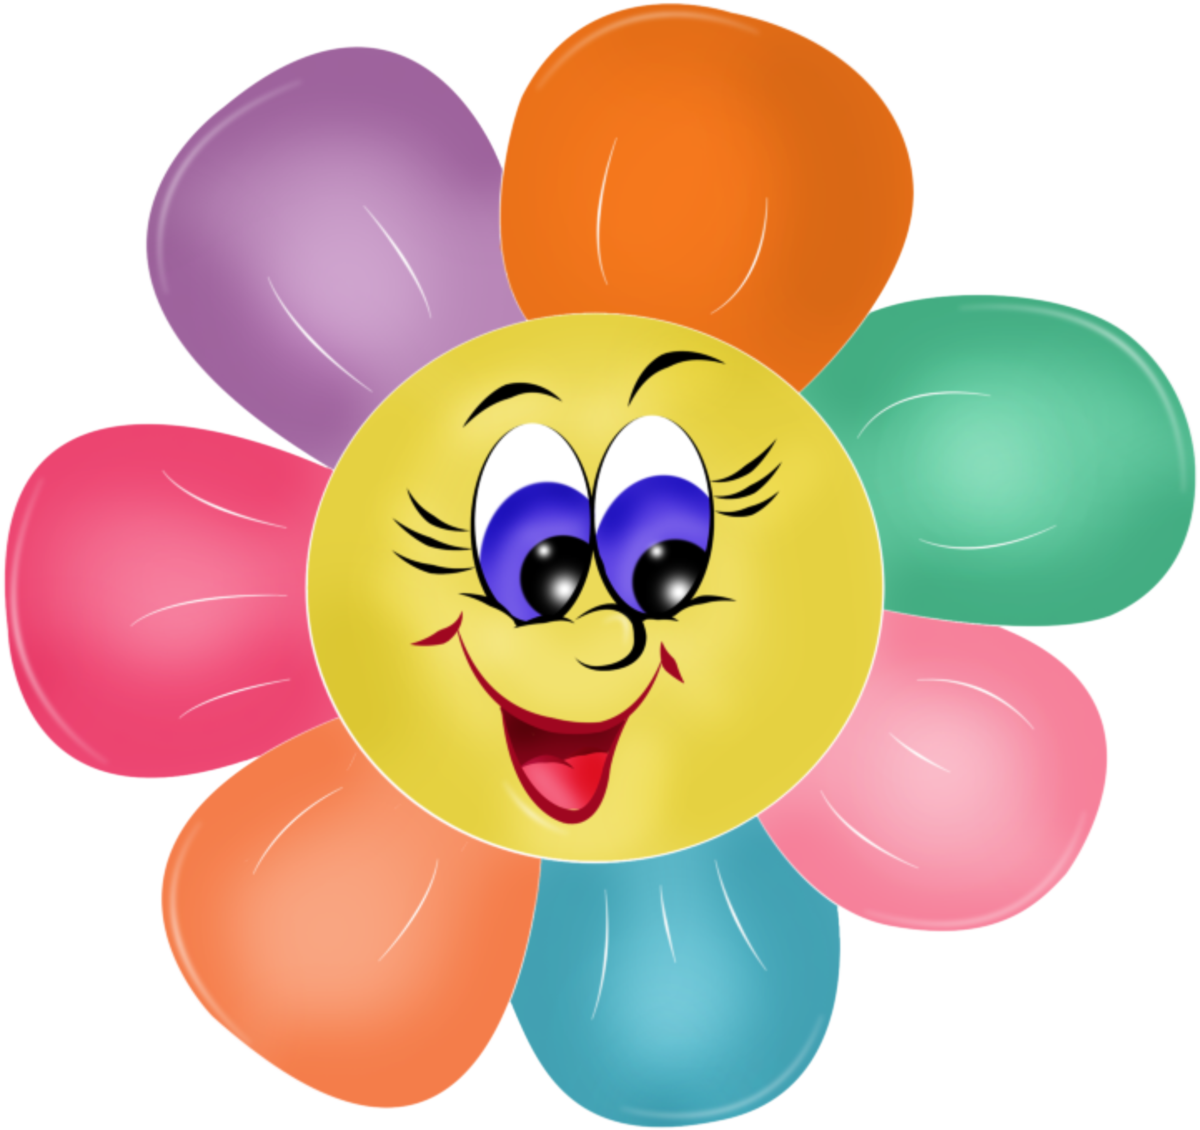 hight resolution of  rock flowers pretty flowers emoji faces smiley faces happy smiley